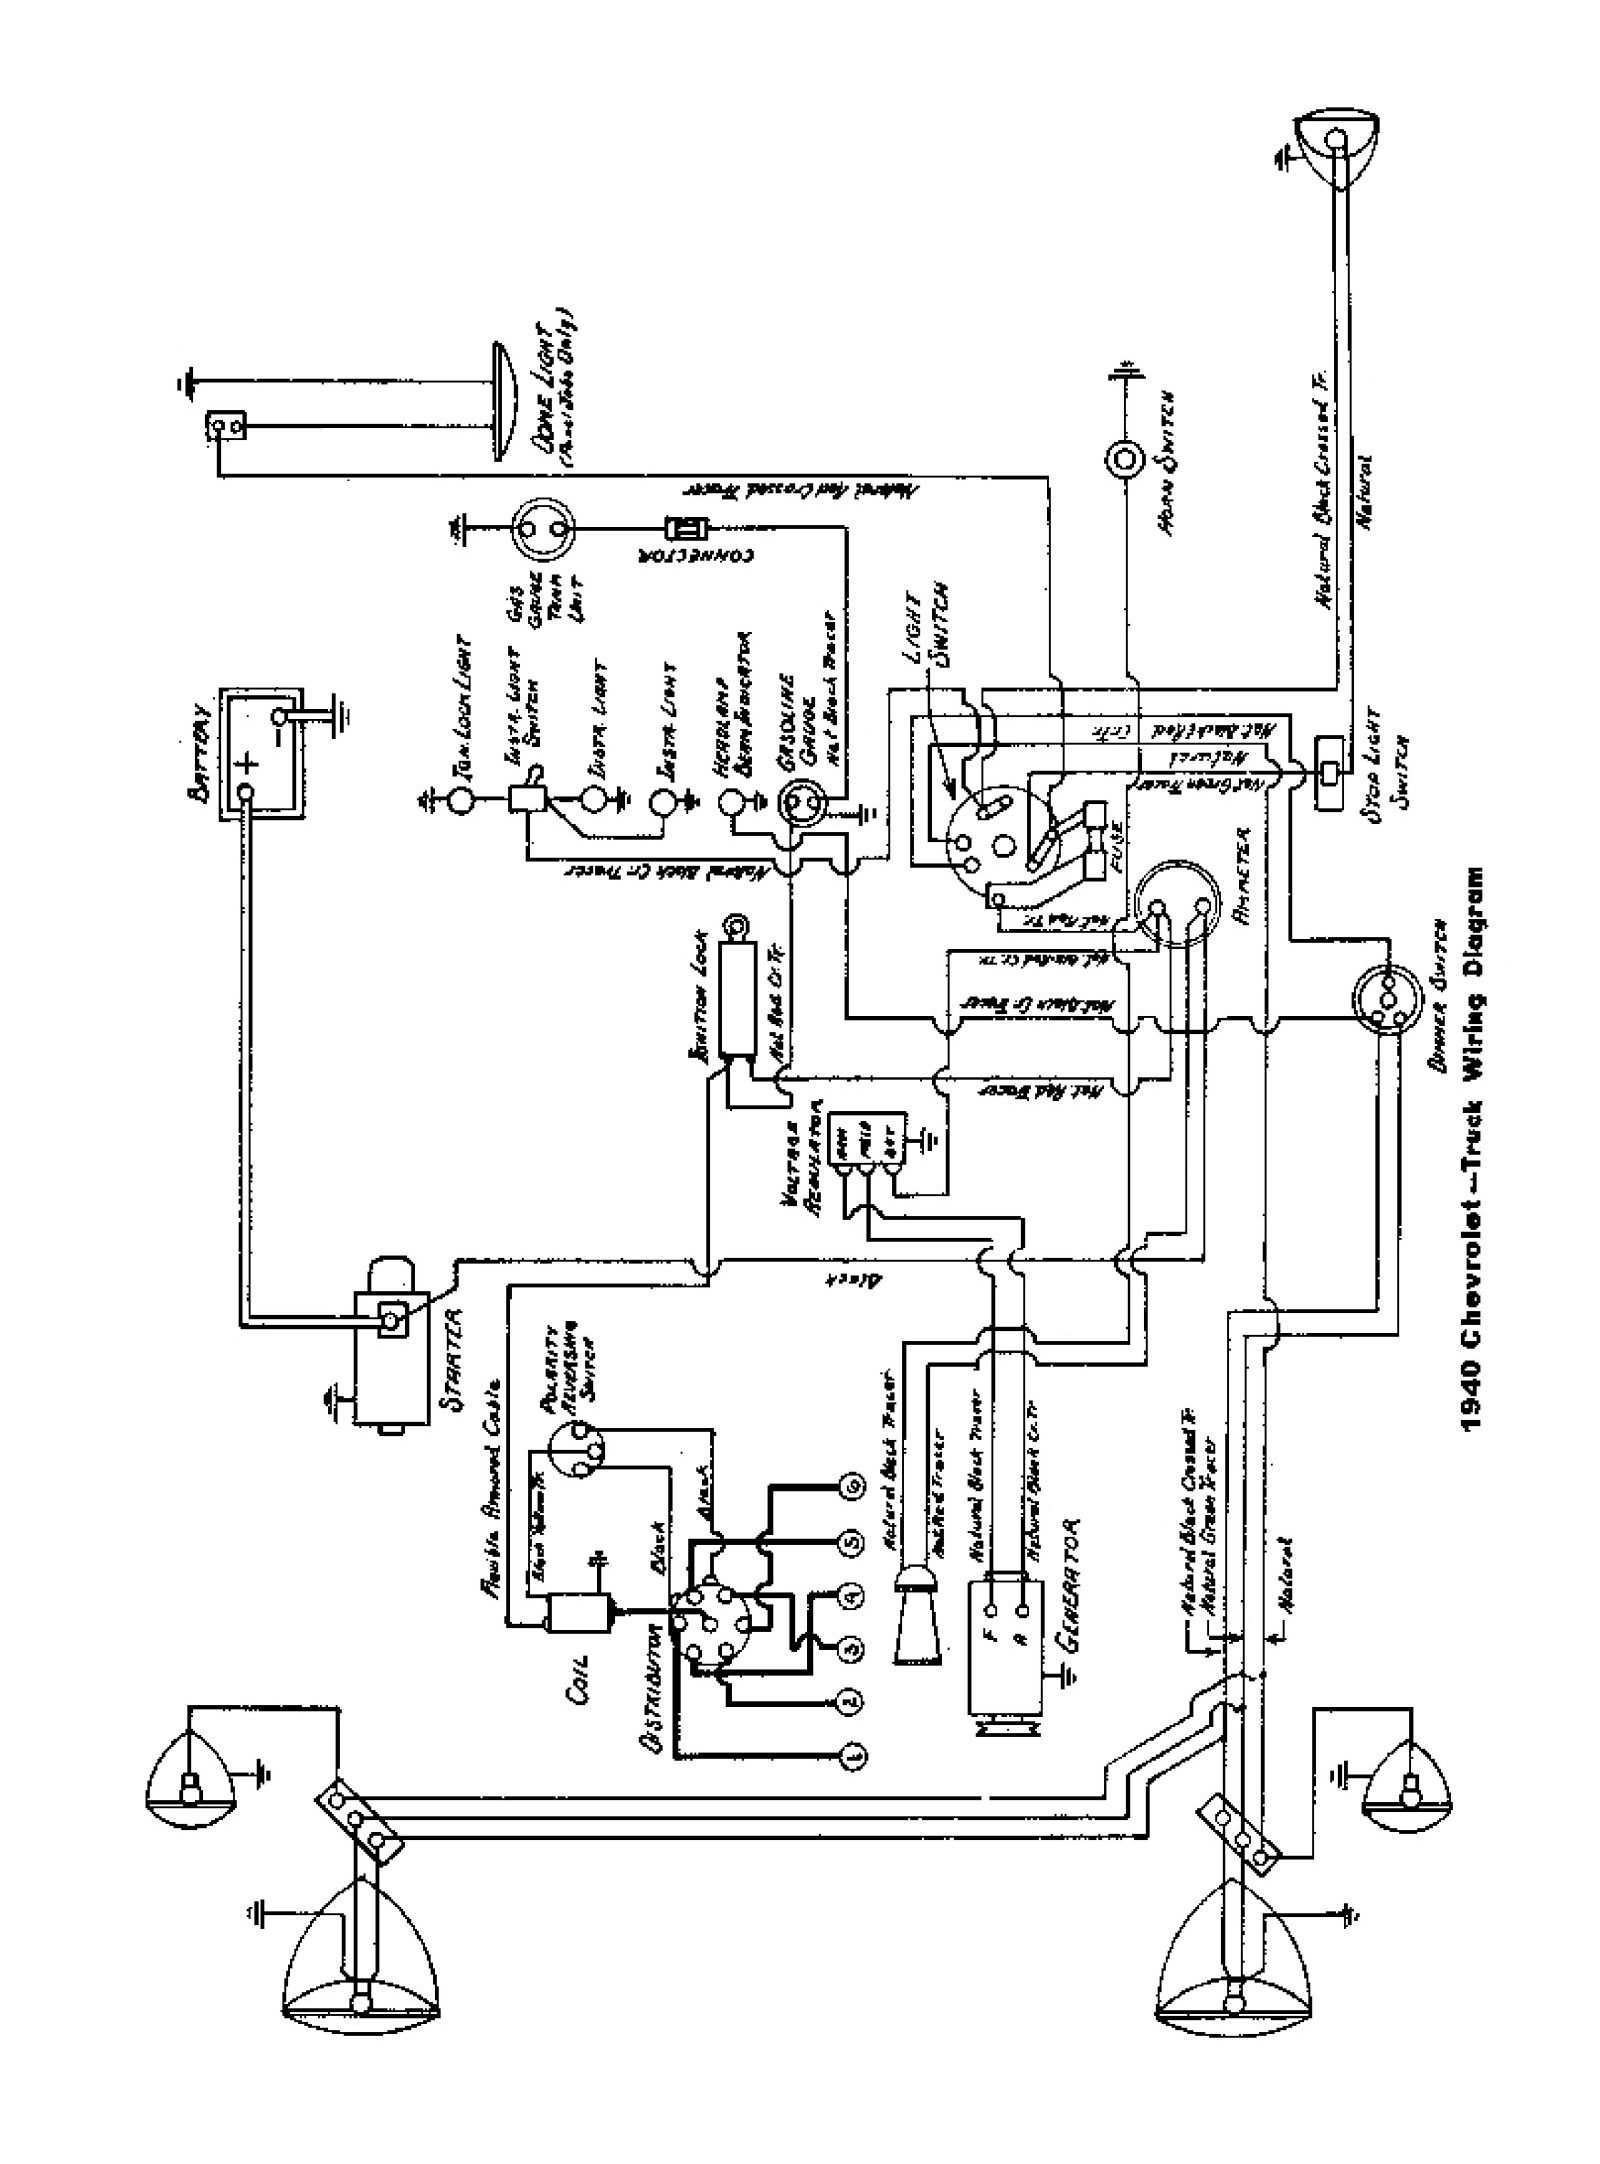 91 Toyota Tercel Engine Parts Diagram 91 Toyota Celica GT